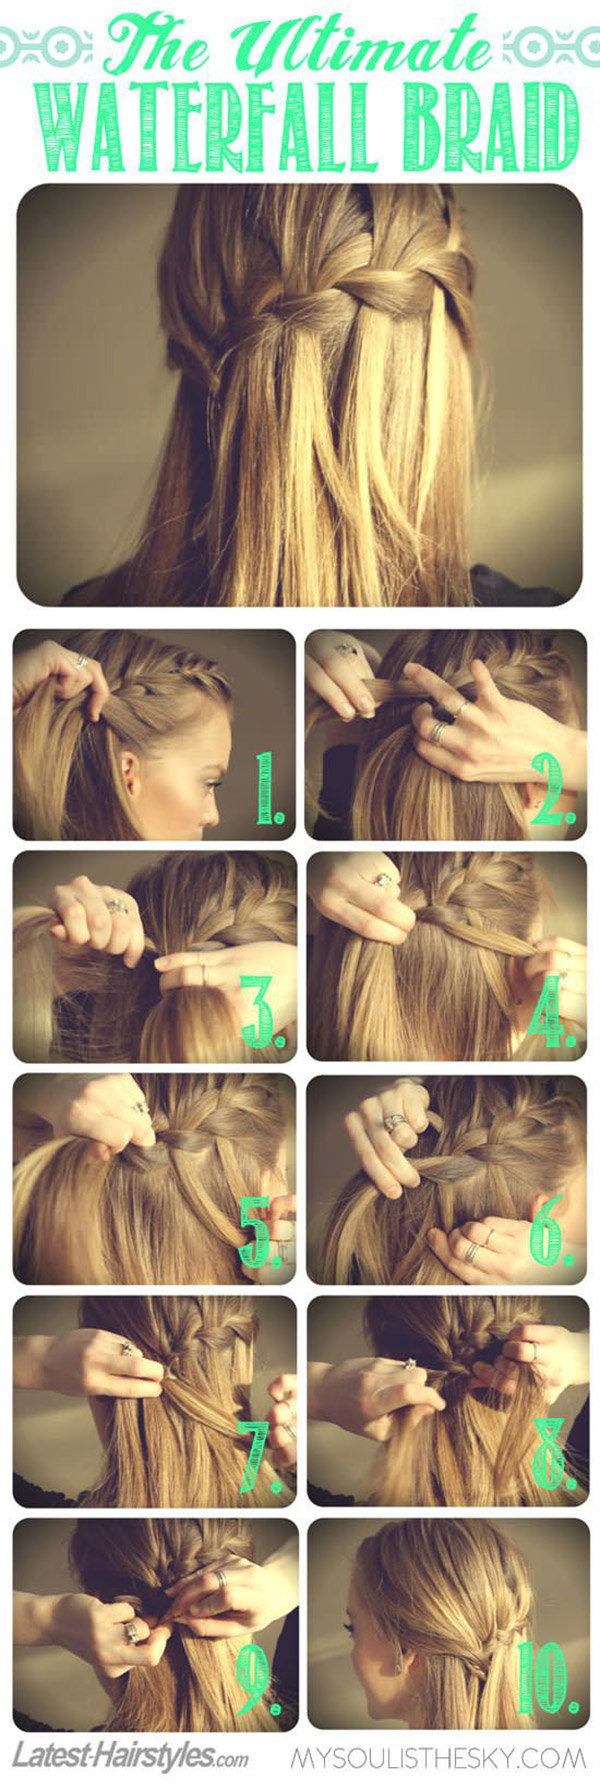 Peachy 10 Beautiful Diy Hairstyles To Wear To A Wedding Bridalguide Short Hairstyles For Black Women Fulllsitofus